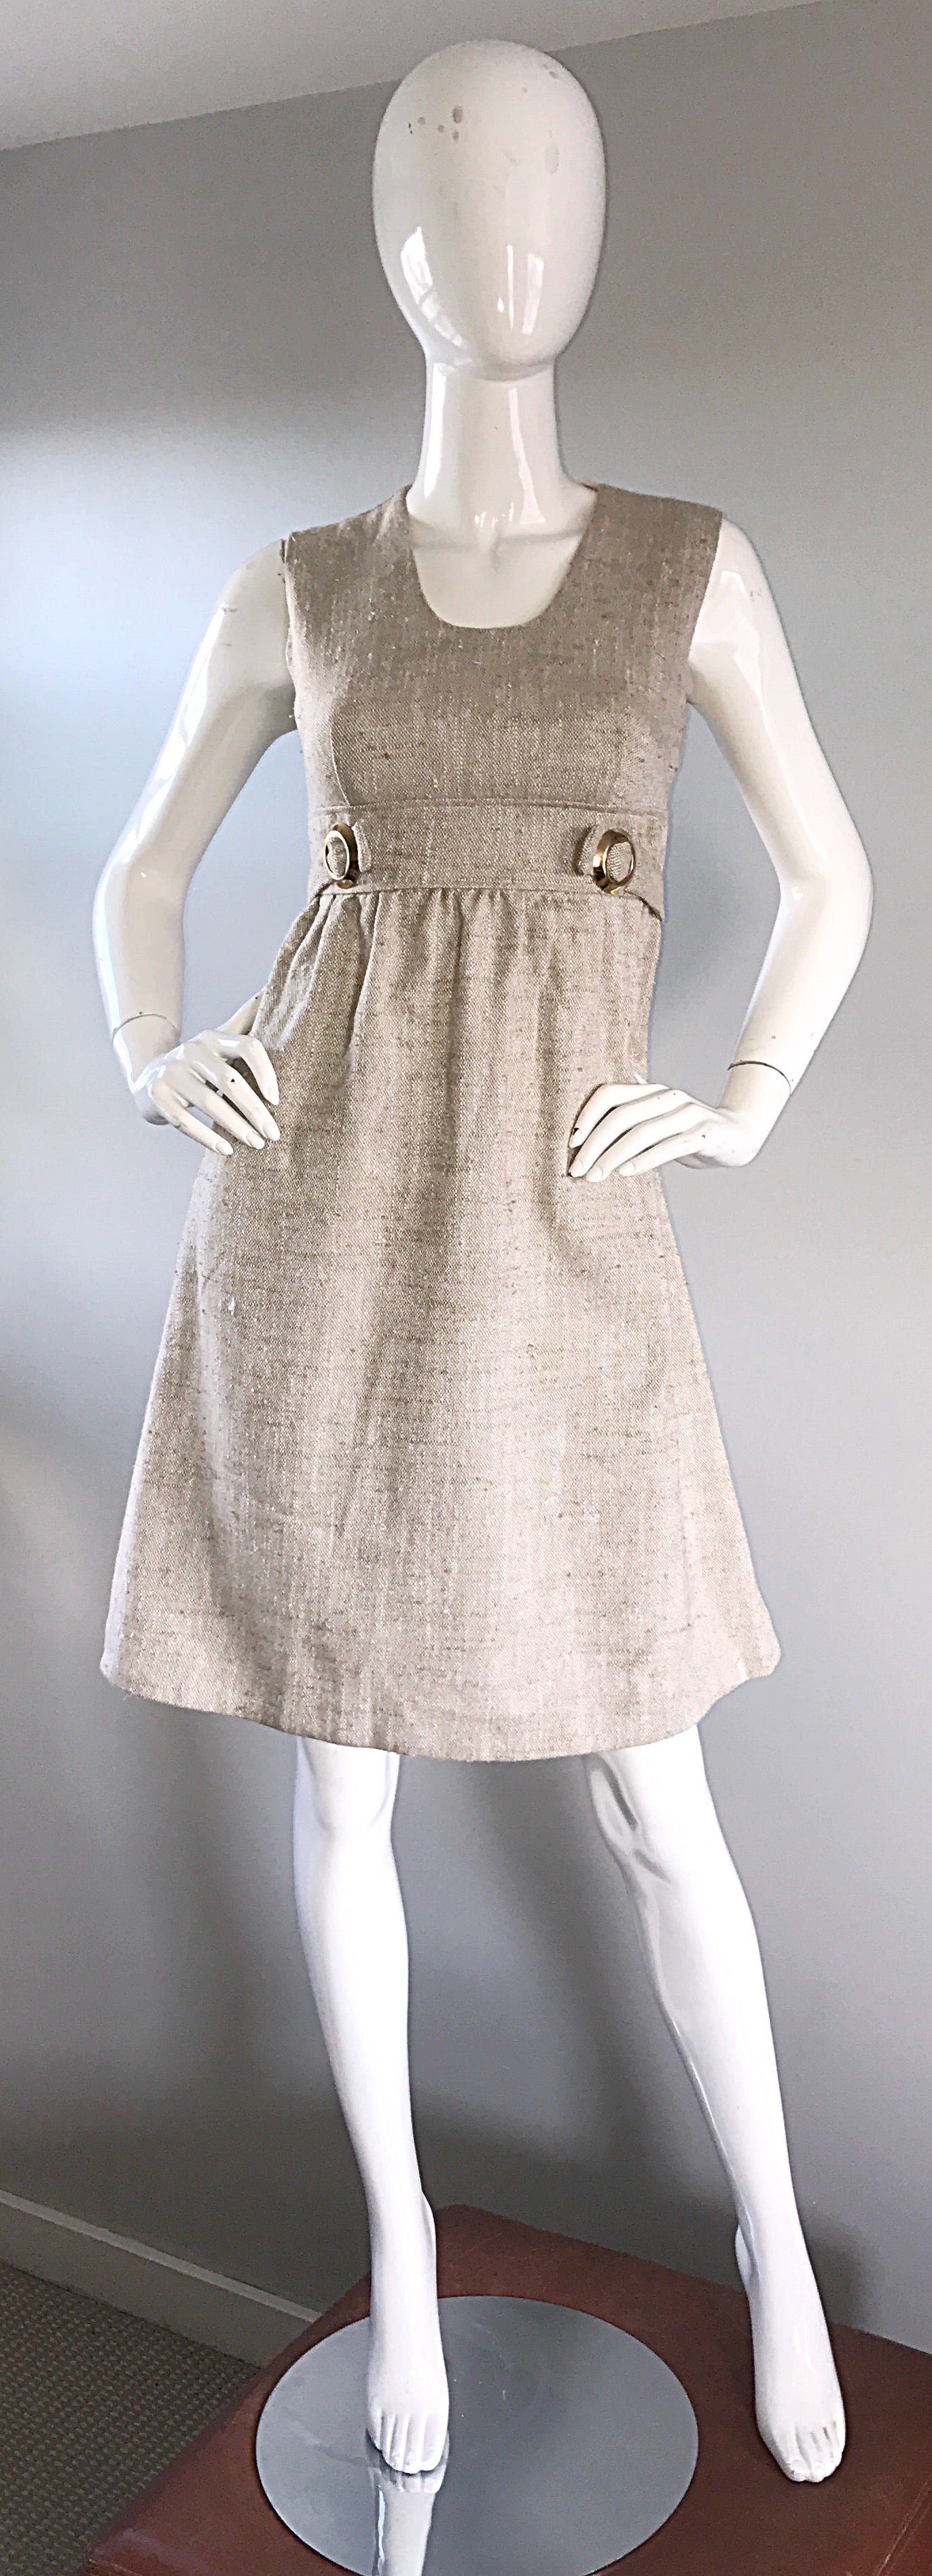 4a84ef94a8c 1960s Lord and Taylor Khaki Tan Linen Vintage 60s A - Line Mod Babydoll  Dress at 1stdibs